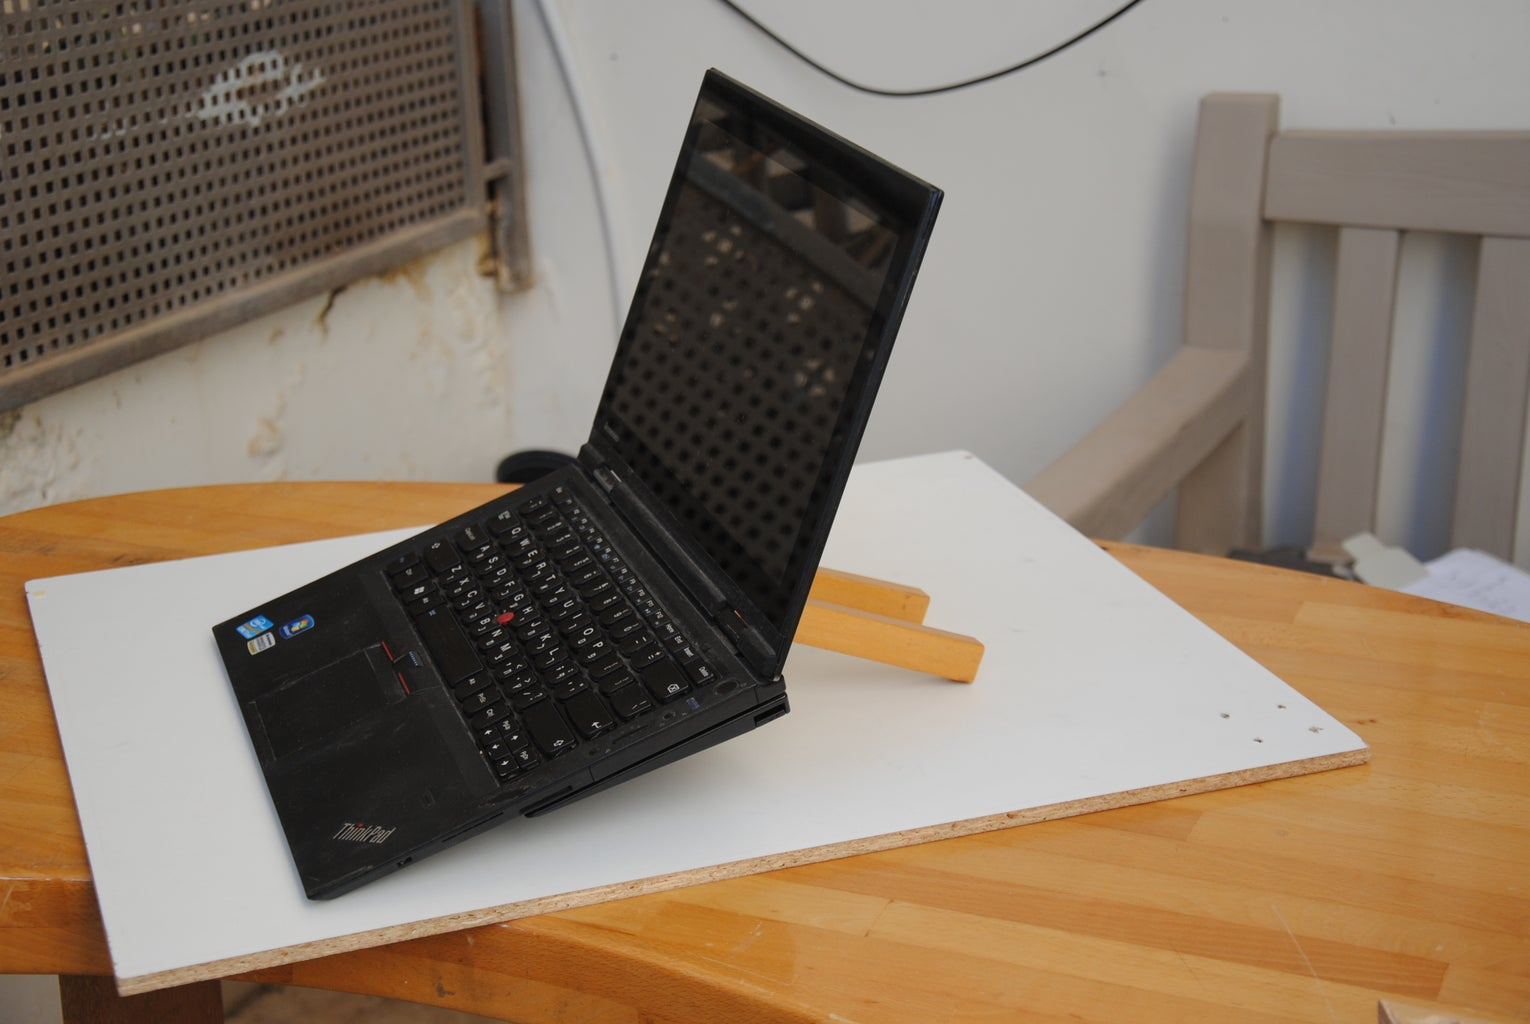 How to Make a Wooden Laptop Stand (Adjustable Angle)